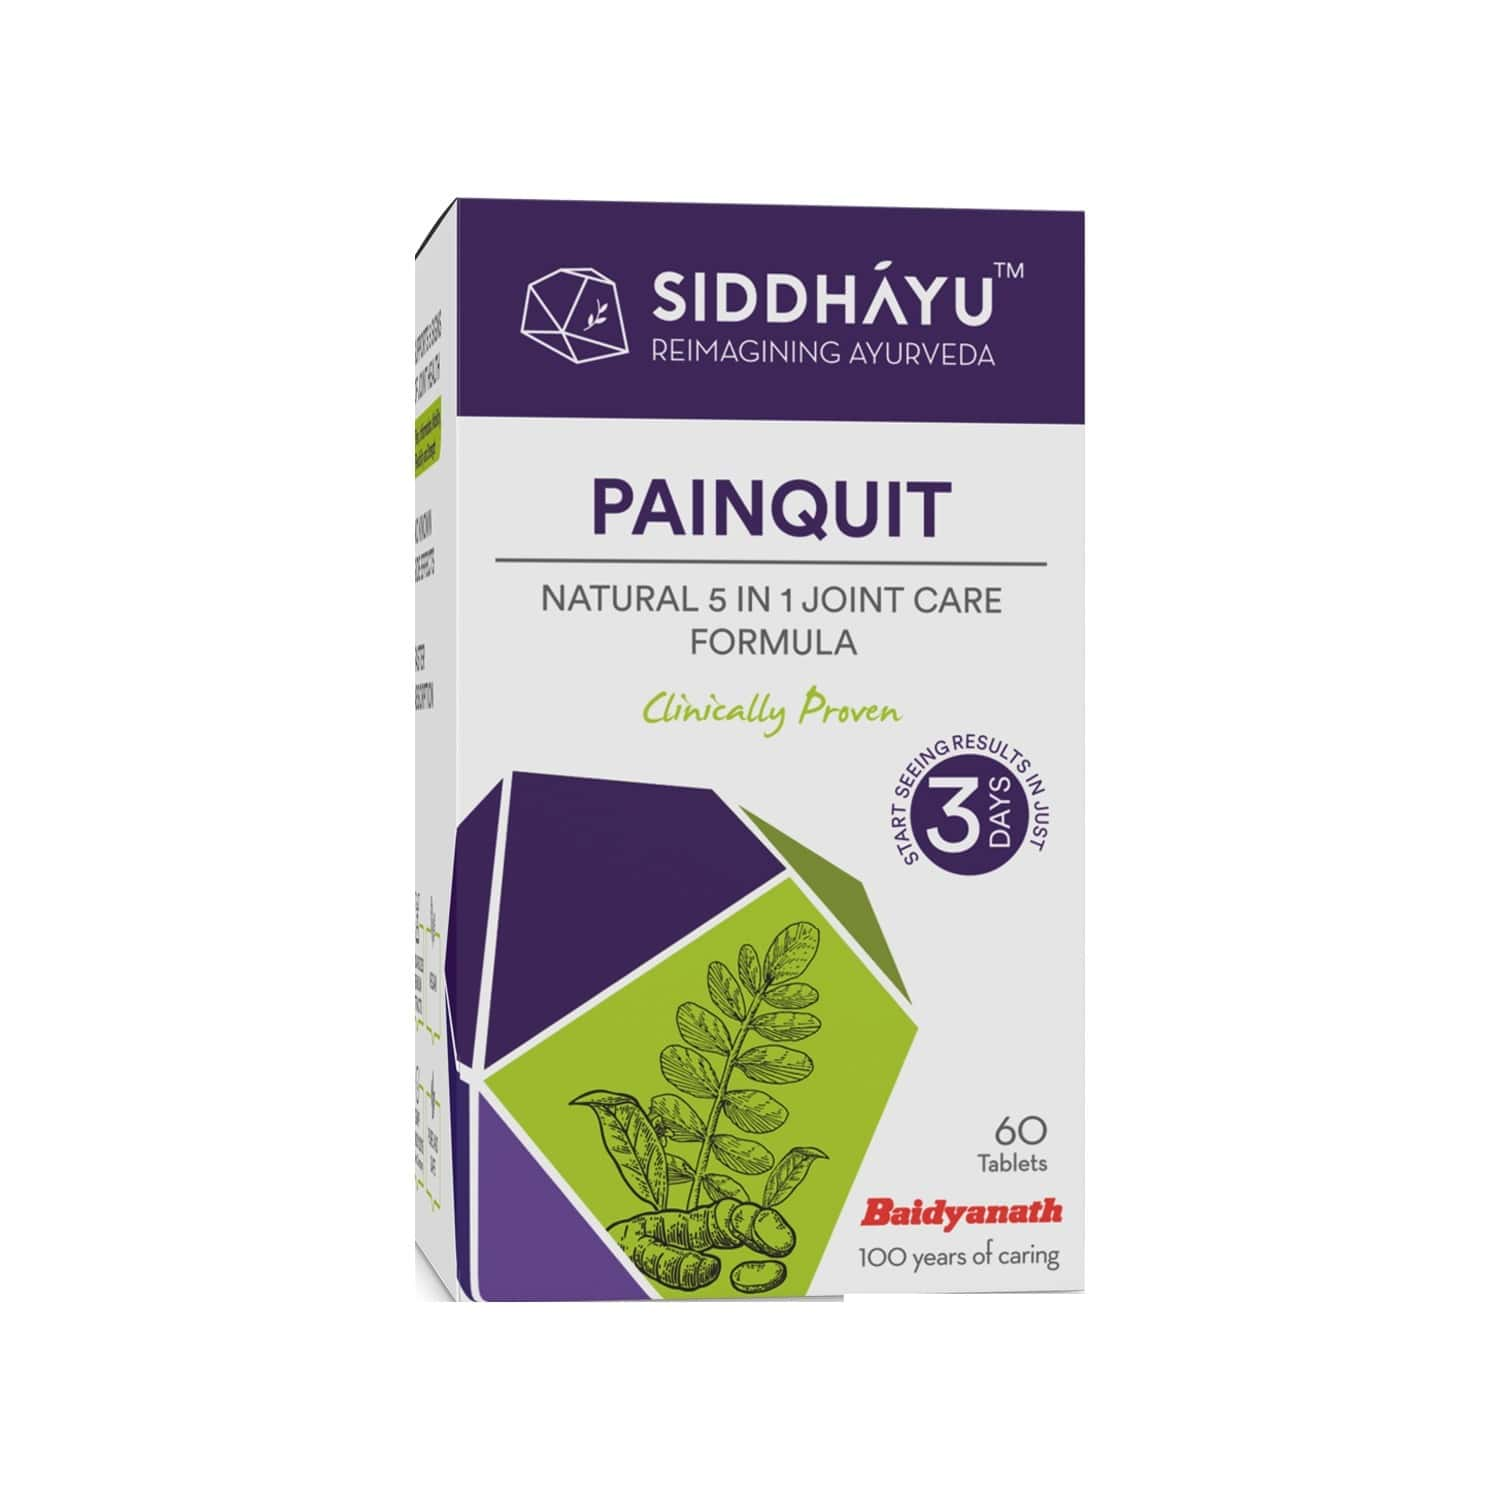 Siddhayu Painquit Tablet Pain Relief Supplement   Ayurvedic Herbal Remedy For Bones And Joints I Natural Joint Pain Relief I Arthritis Pain   60 Tablets X 1